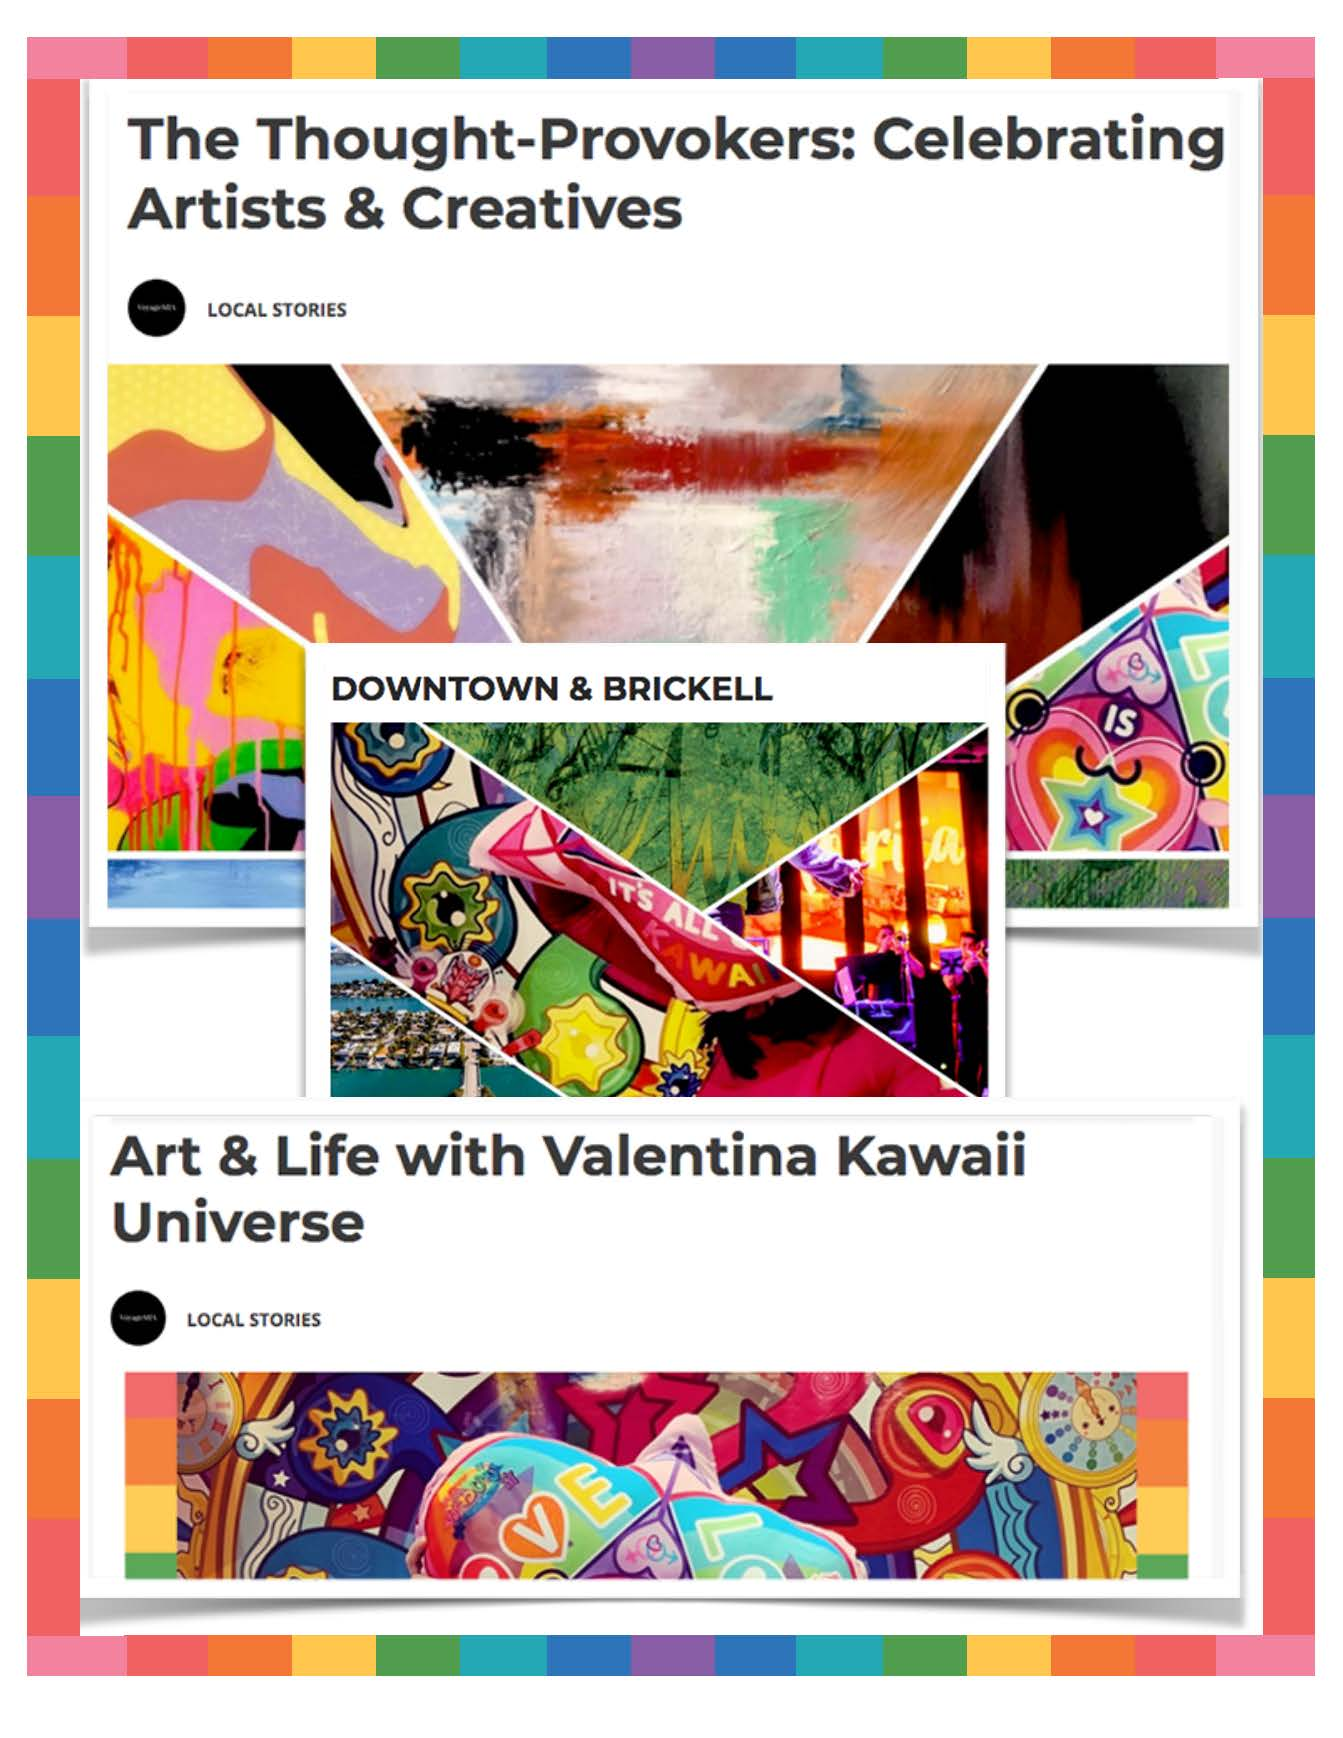 kawaii universe featured artist voyage MIA article_Page_2.jpg